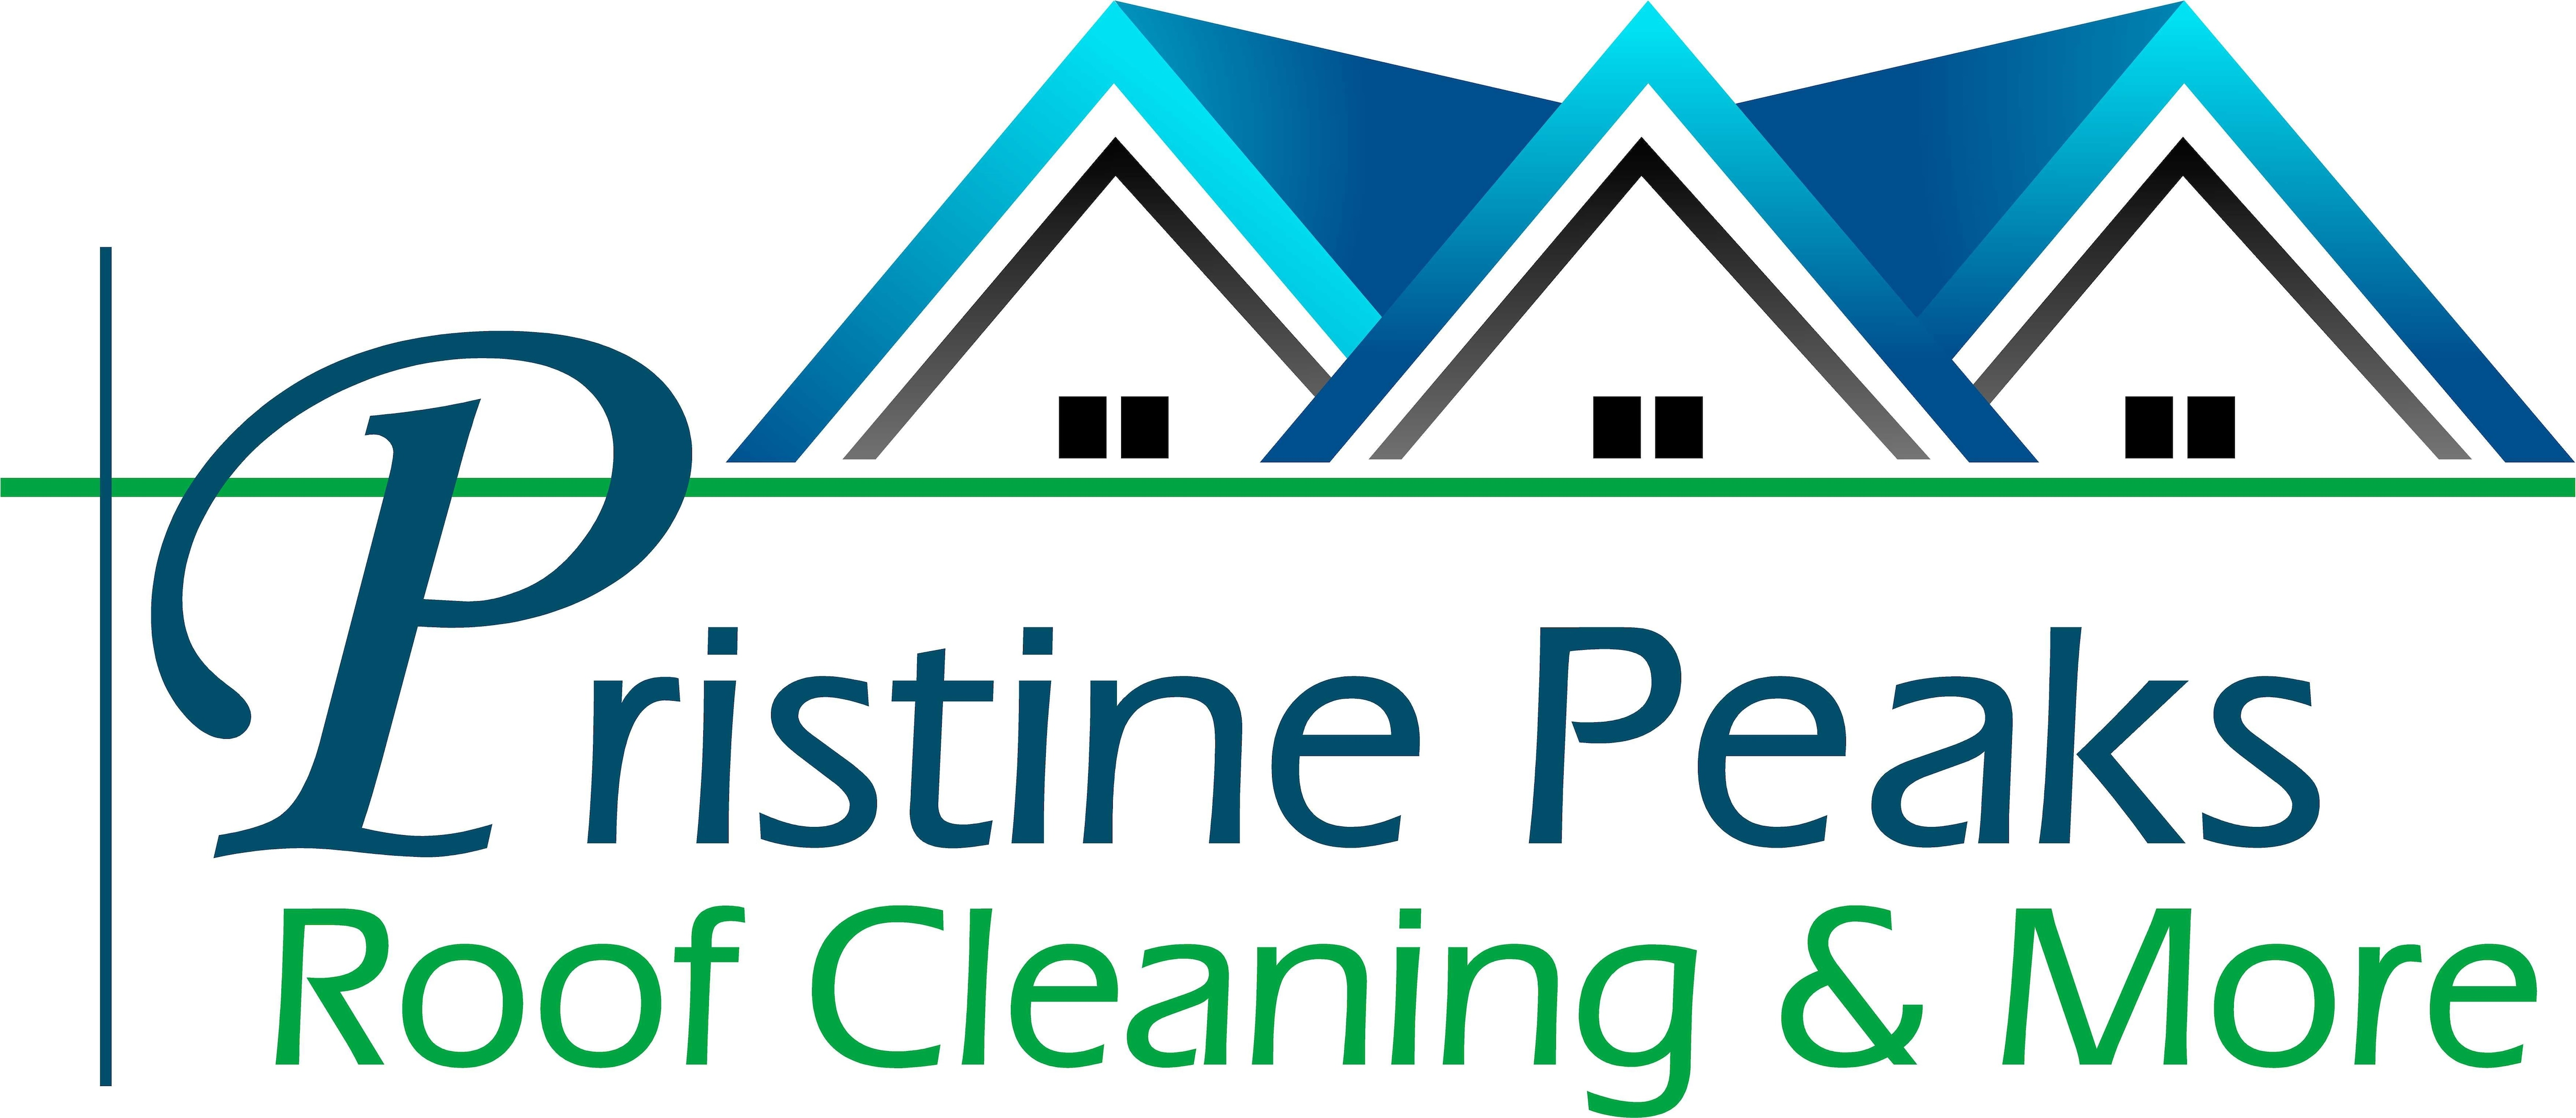 Pristine Peaks Roof Cleaning and More logo